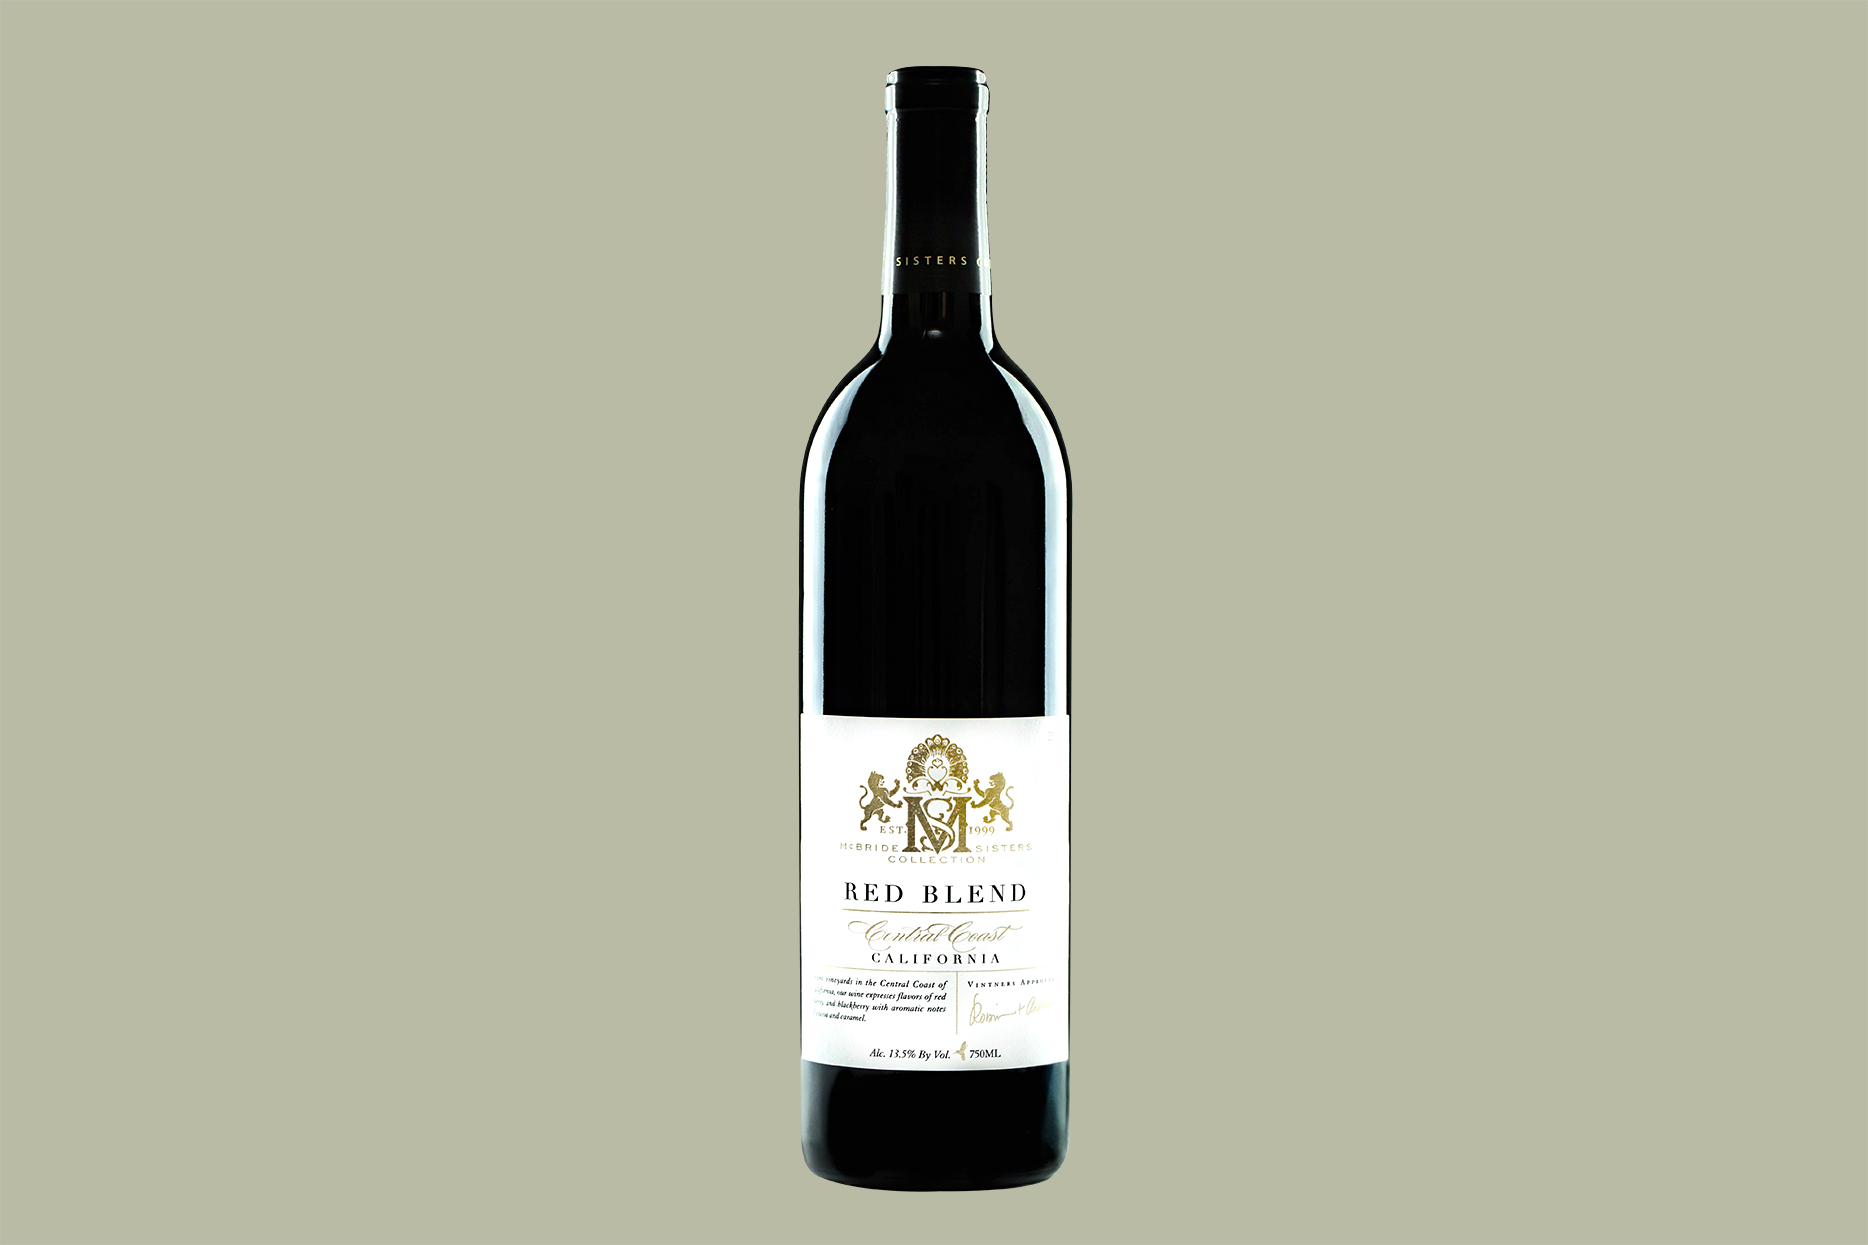 McBride Sisters Central Coast California Red Blend